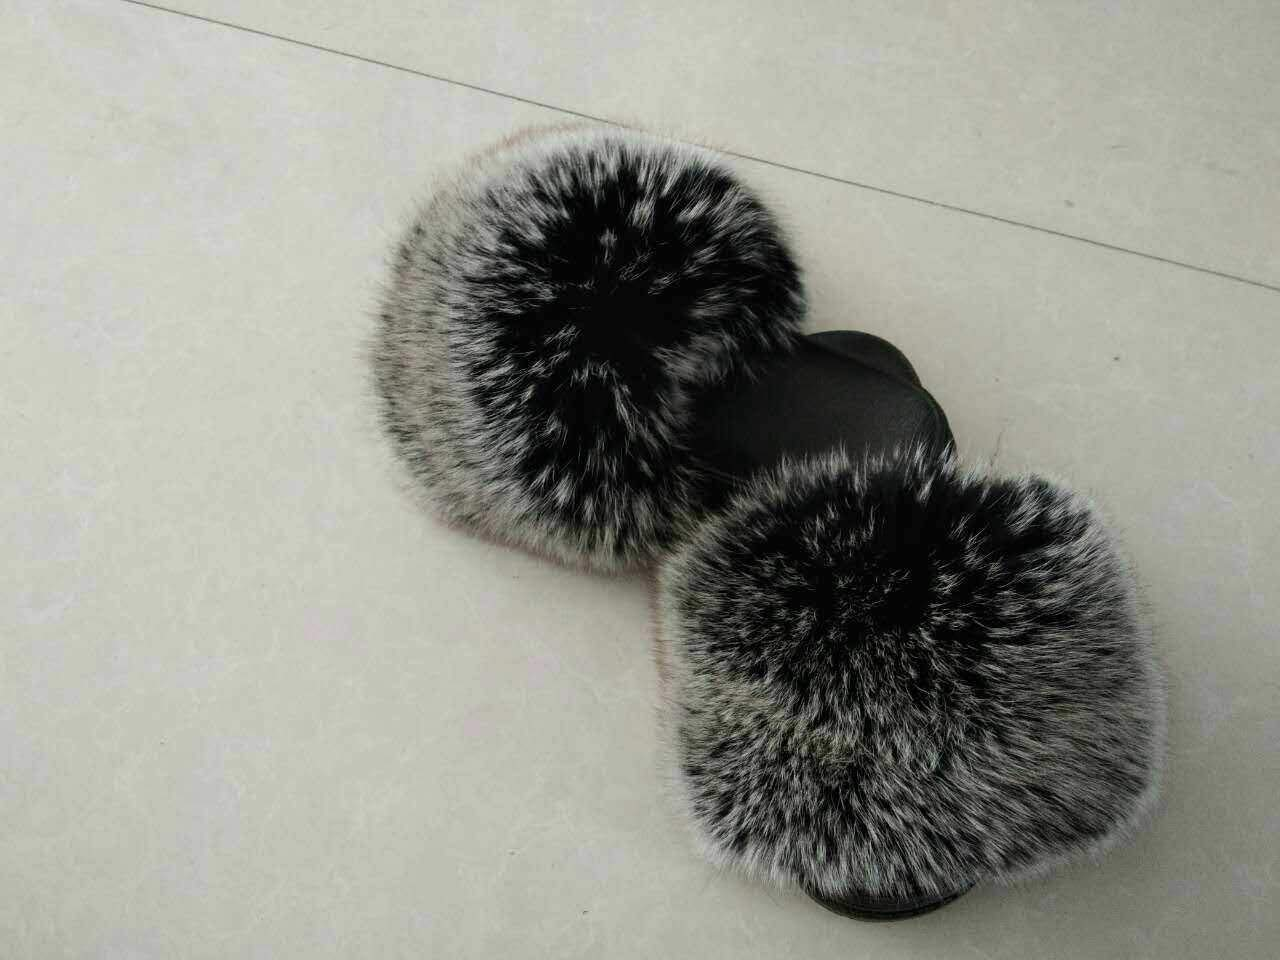 83a033219268e Cheap Furry Real, find Furry Real deals on line at Alibaba.com